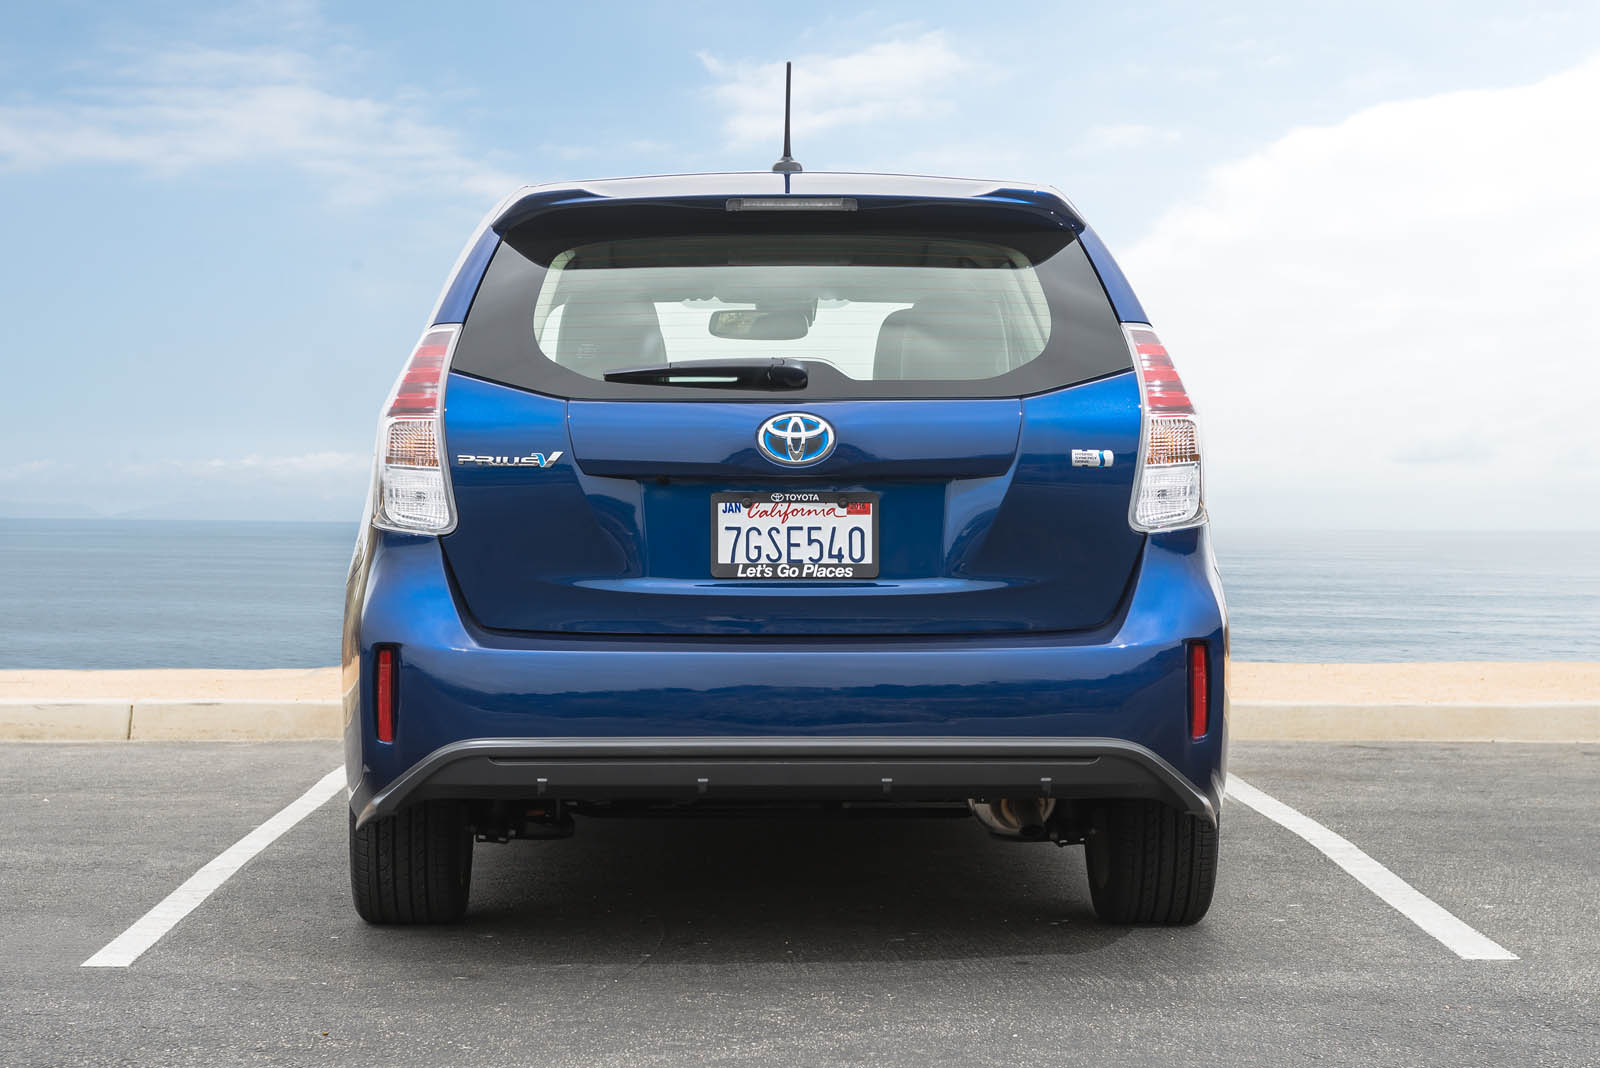 toyota 39 s pulling the prius v from the us market carscoops. Black Bedroom Furniture Sets. Home Design Ideas